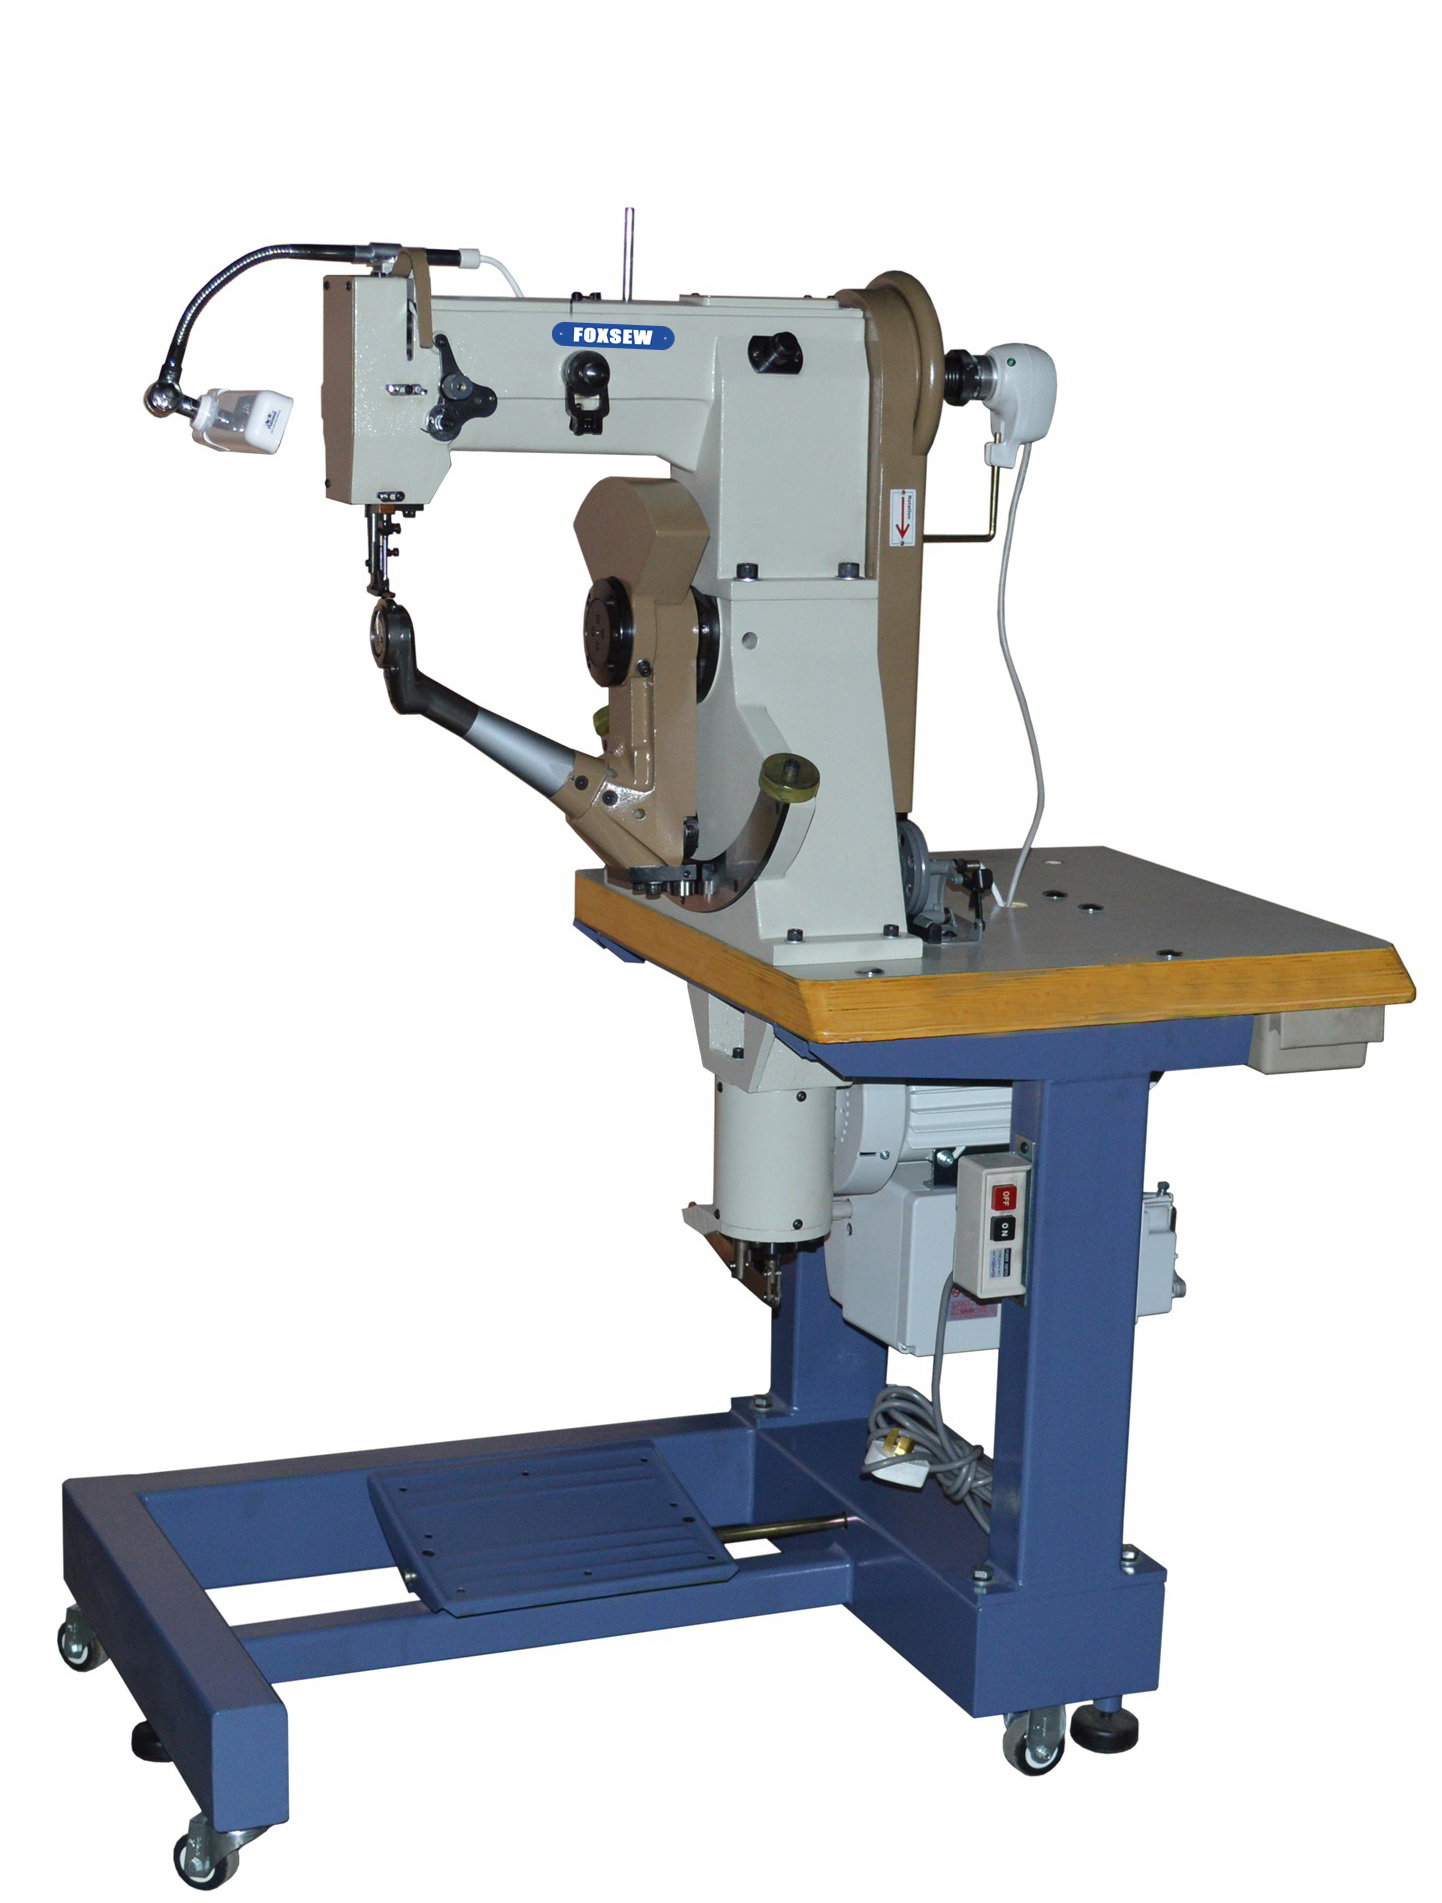 KD-168 Side Seam Sole Stitching Machine